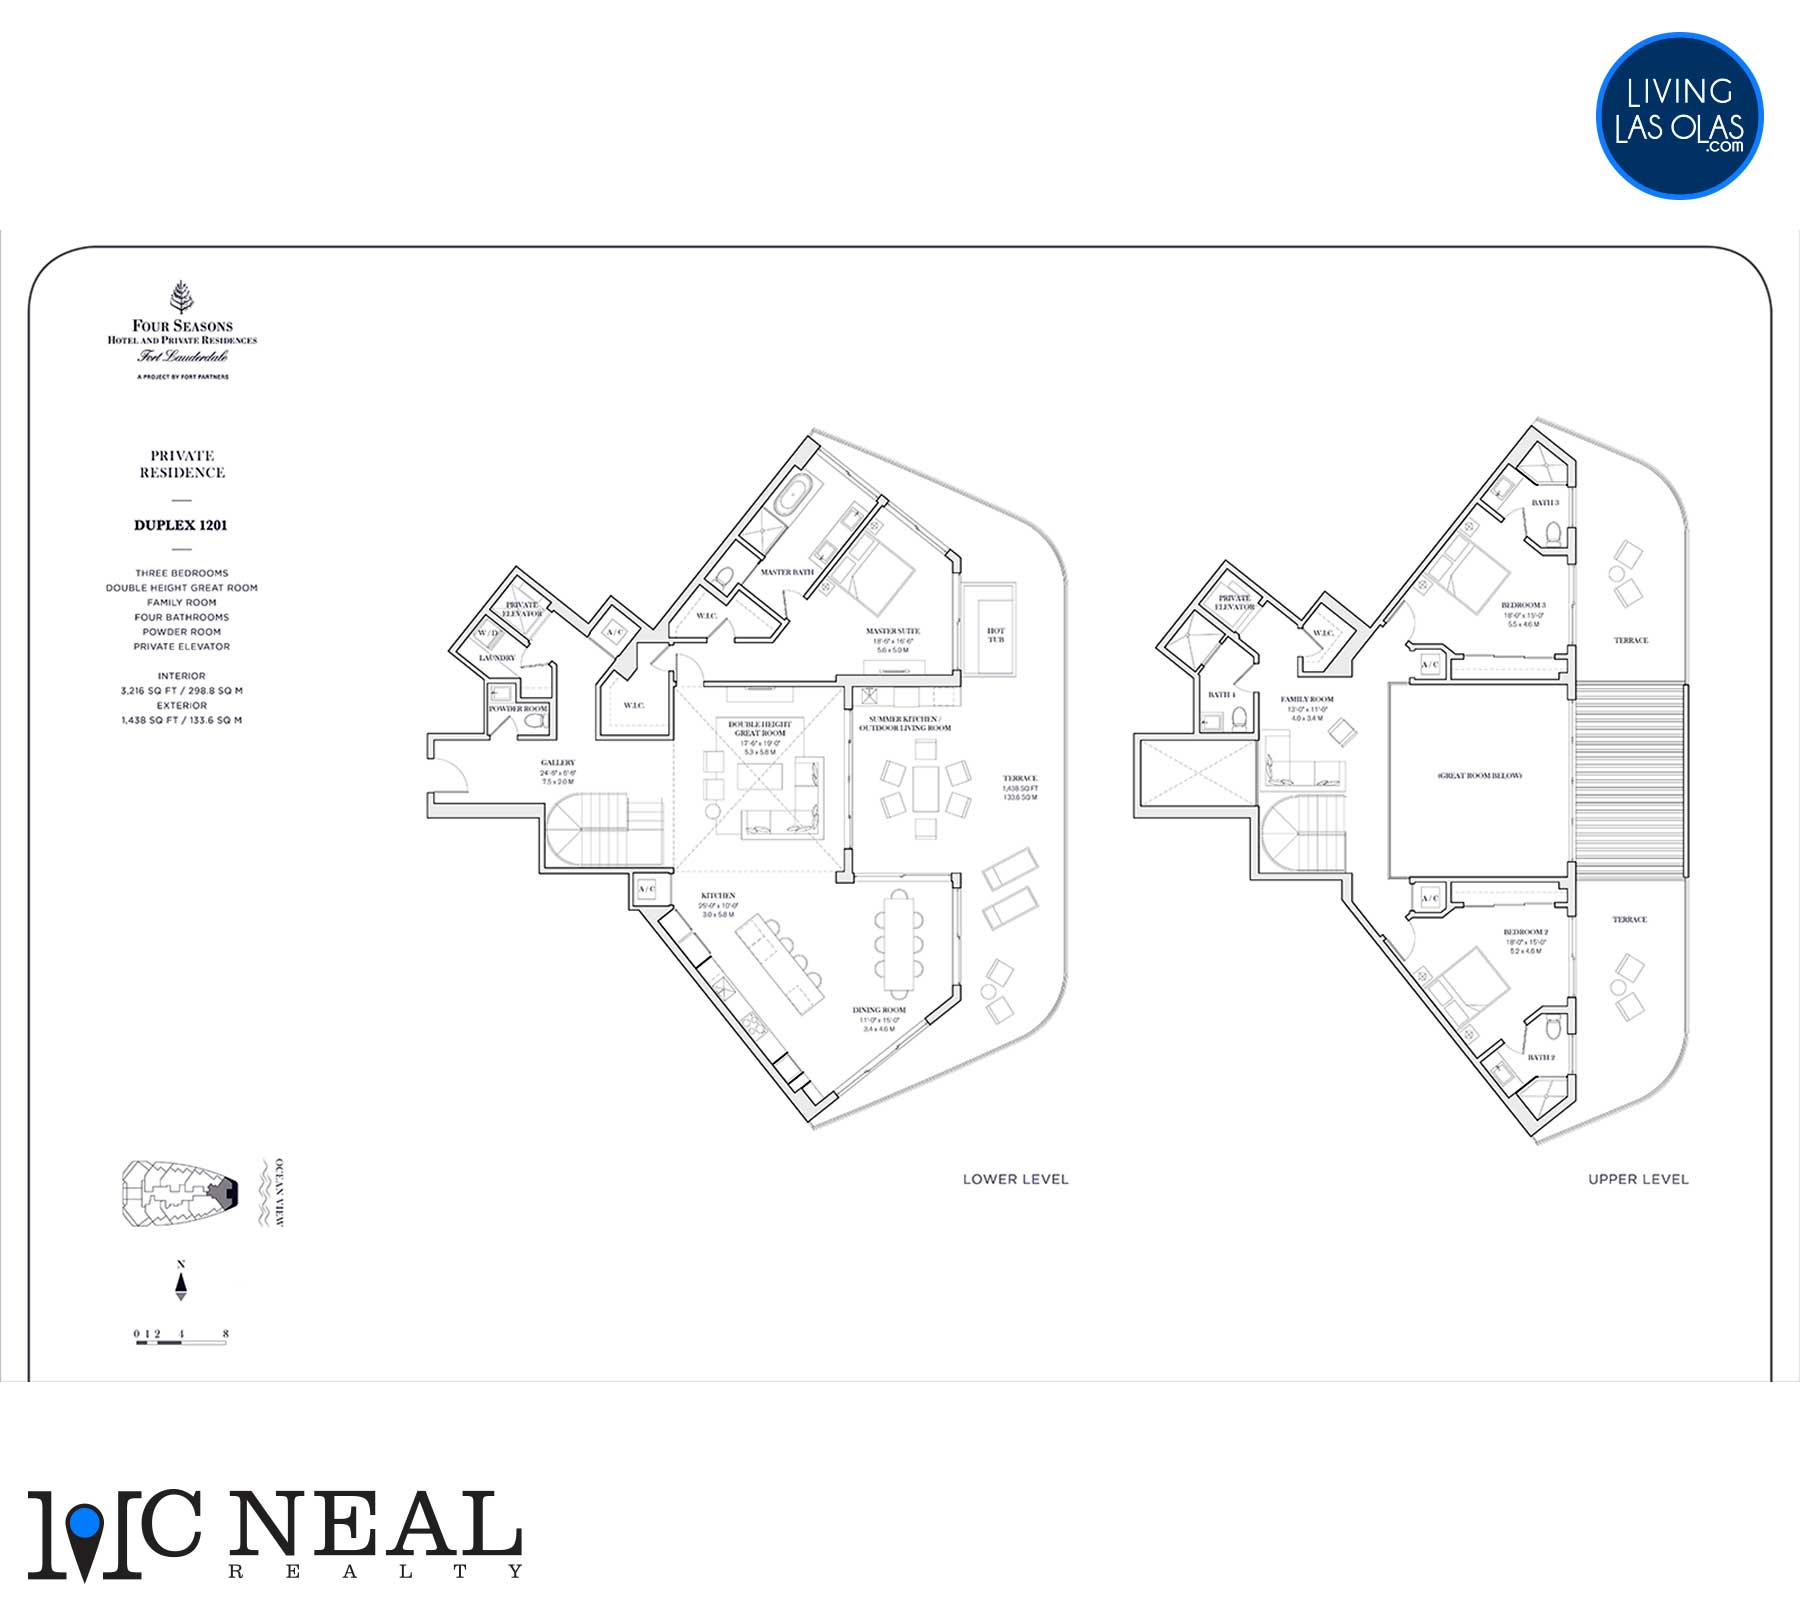 Four Seasons Private Residences Floor Plan 1201